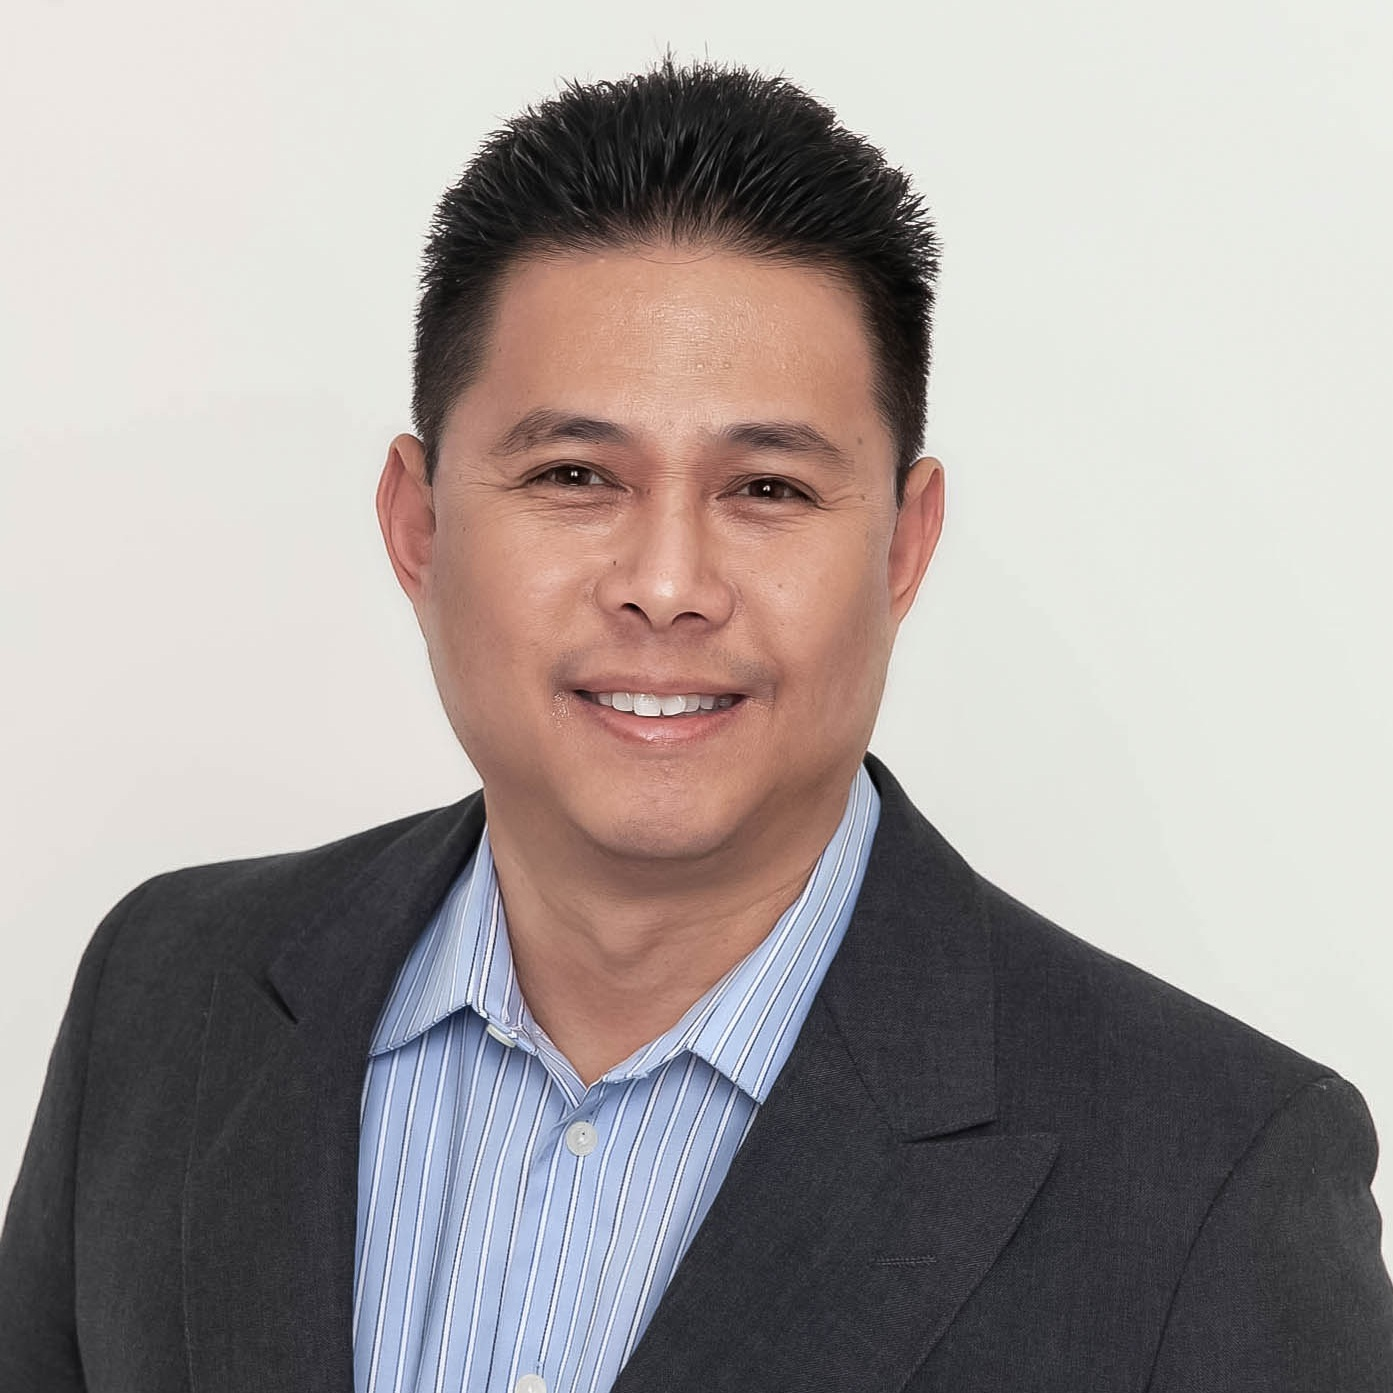 Godfrey Tan-Torres